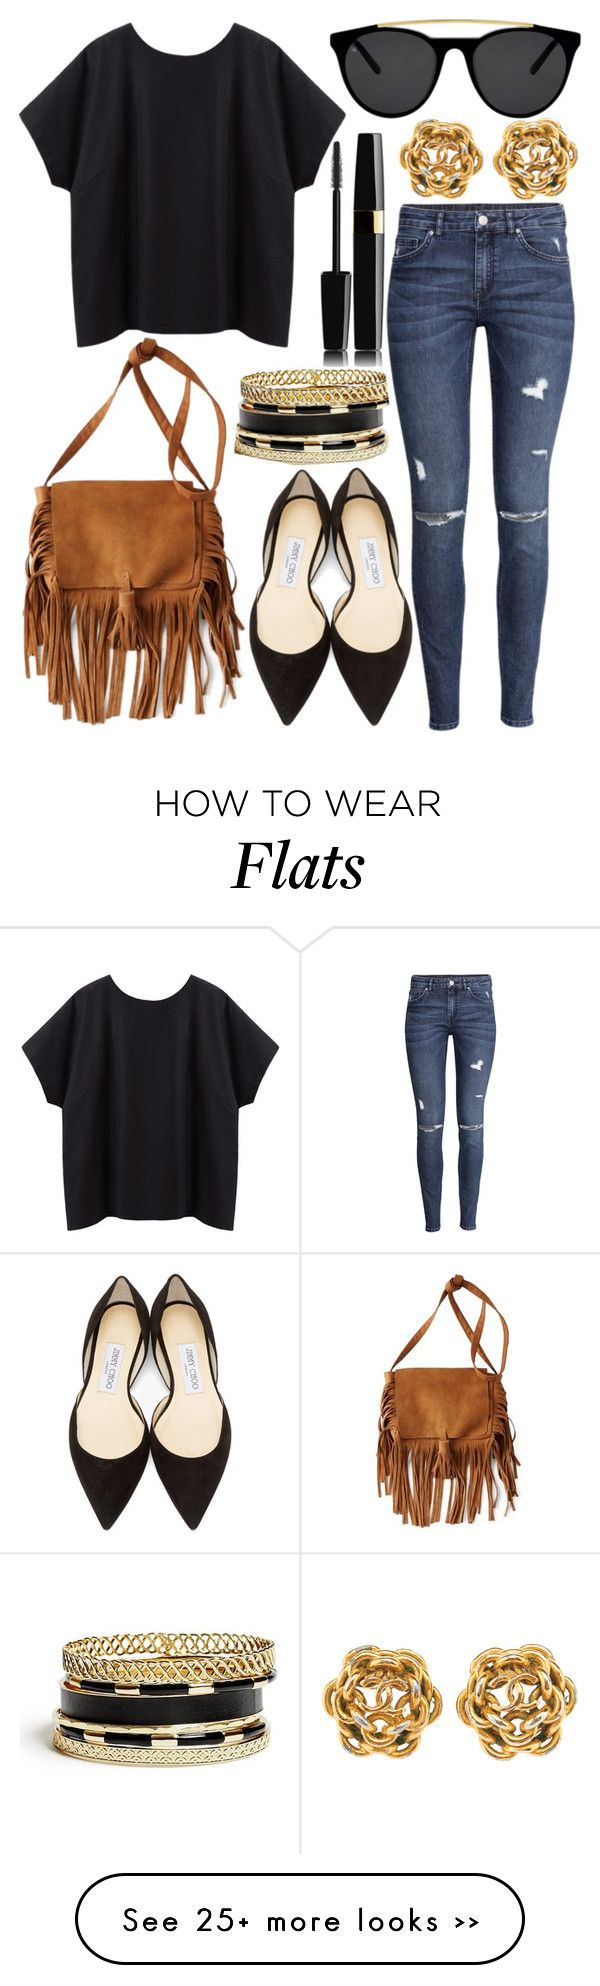 """""""Untitled #545"""" by daimy-style on Polyvore featuring moda, La Garçonne Moderne, H&M, American Eagle Outfitters, Smoke & Mirrors, Jimmy Choo y GUESS"""